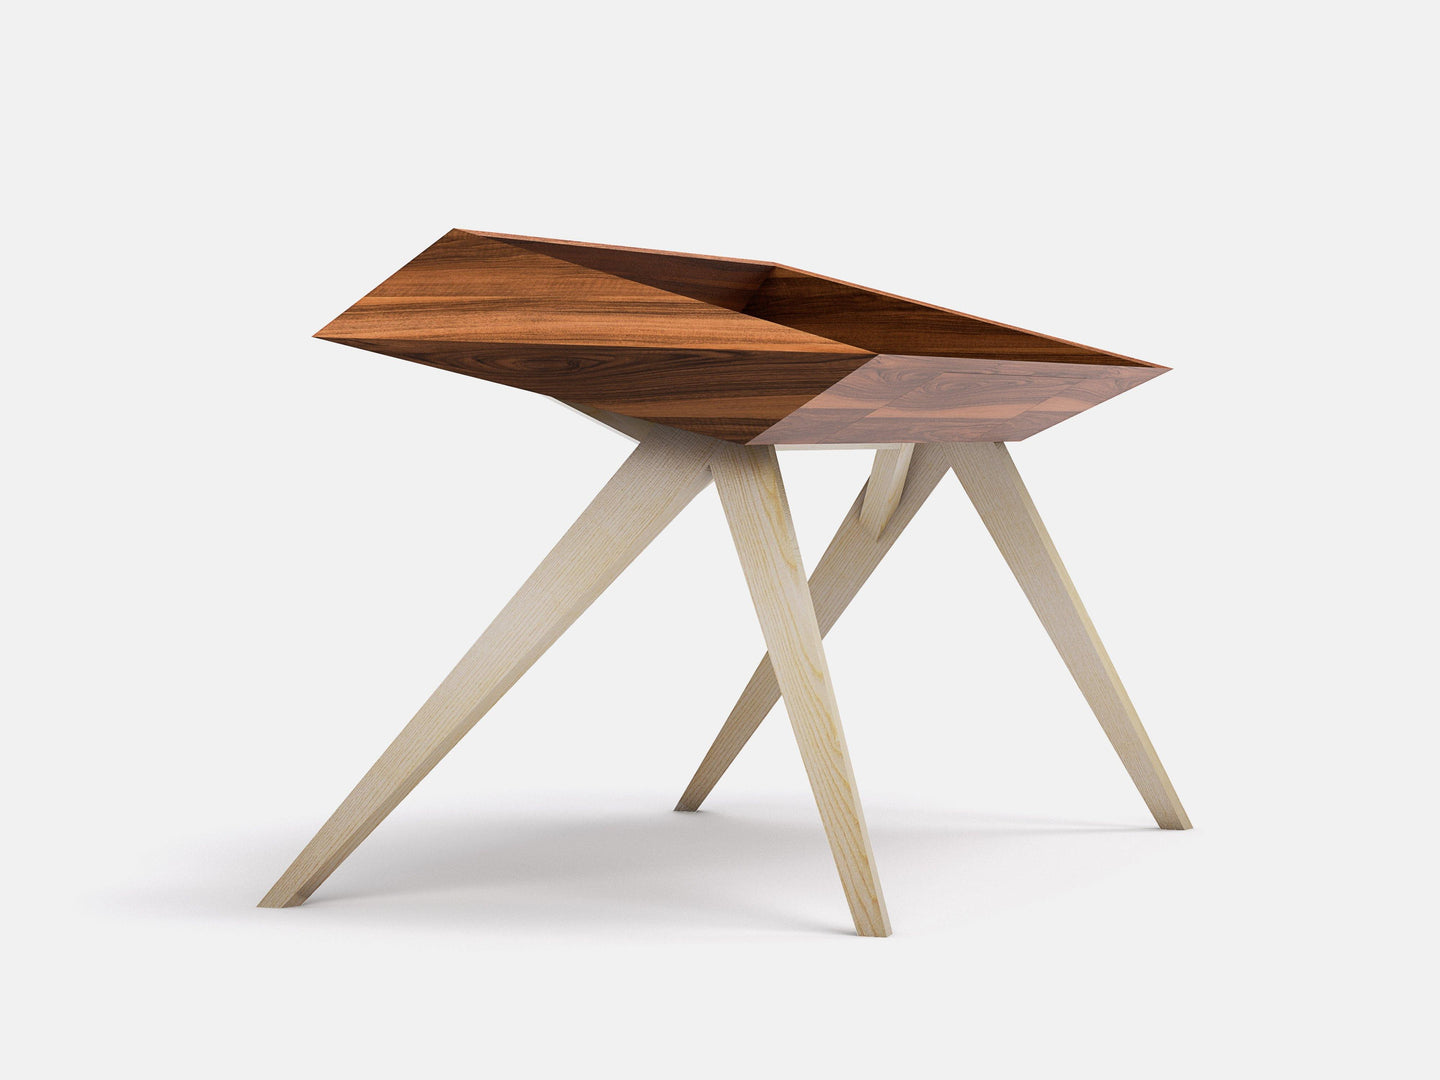 WoW Desk - Luxury Wood Desk